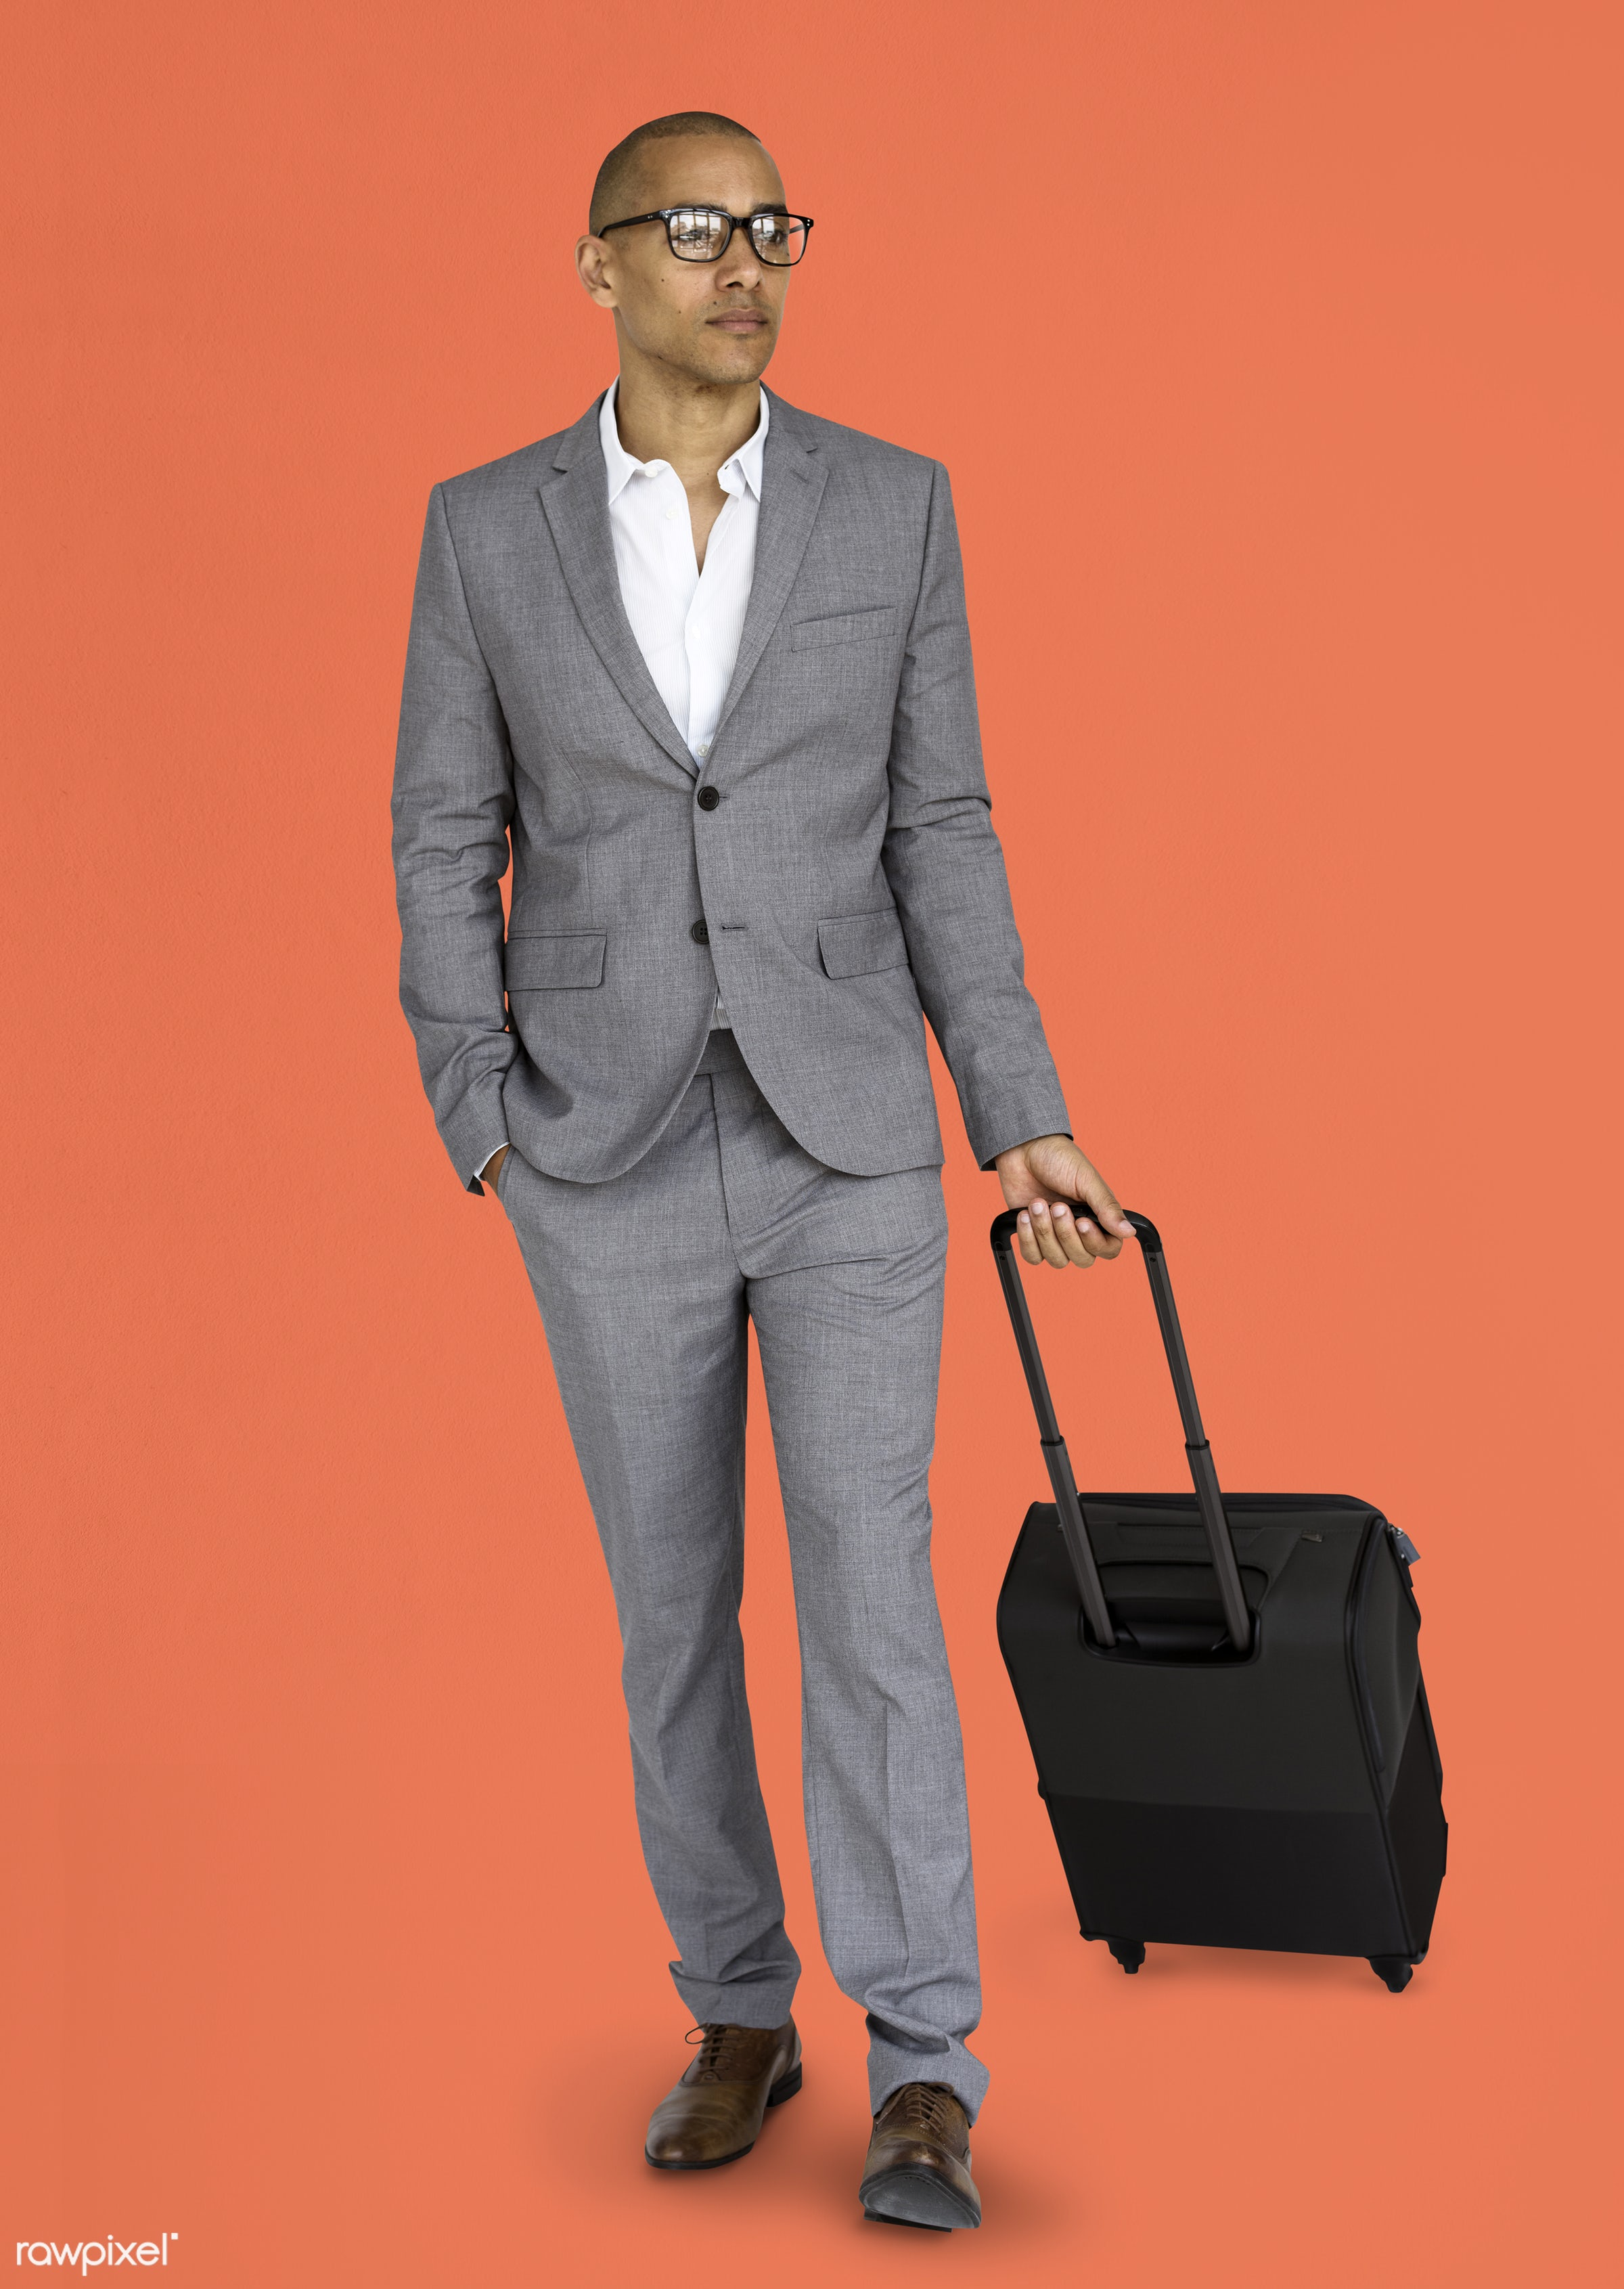 studio, face, person, glasses, travel, people, business, businessman, trip, man, orange, isolated, suitcase, male, traveler...